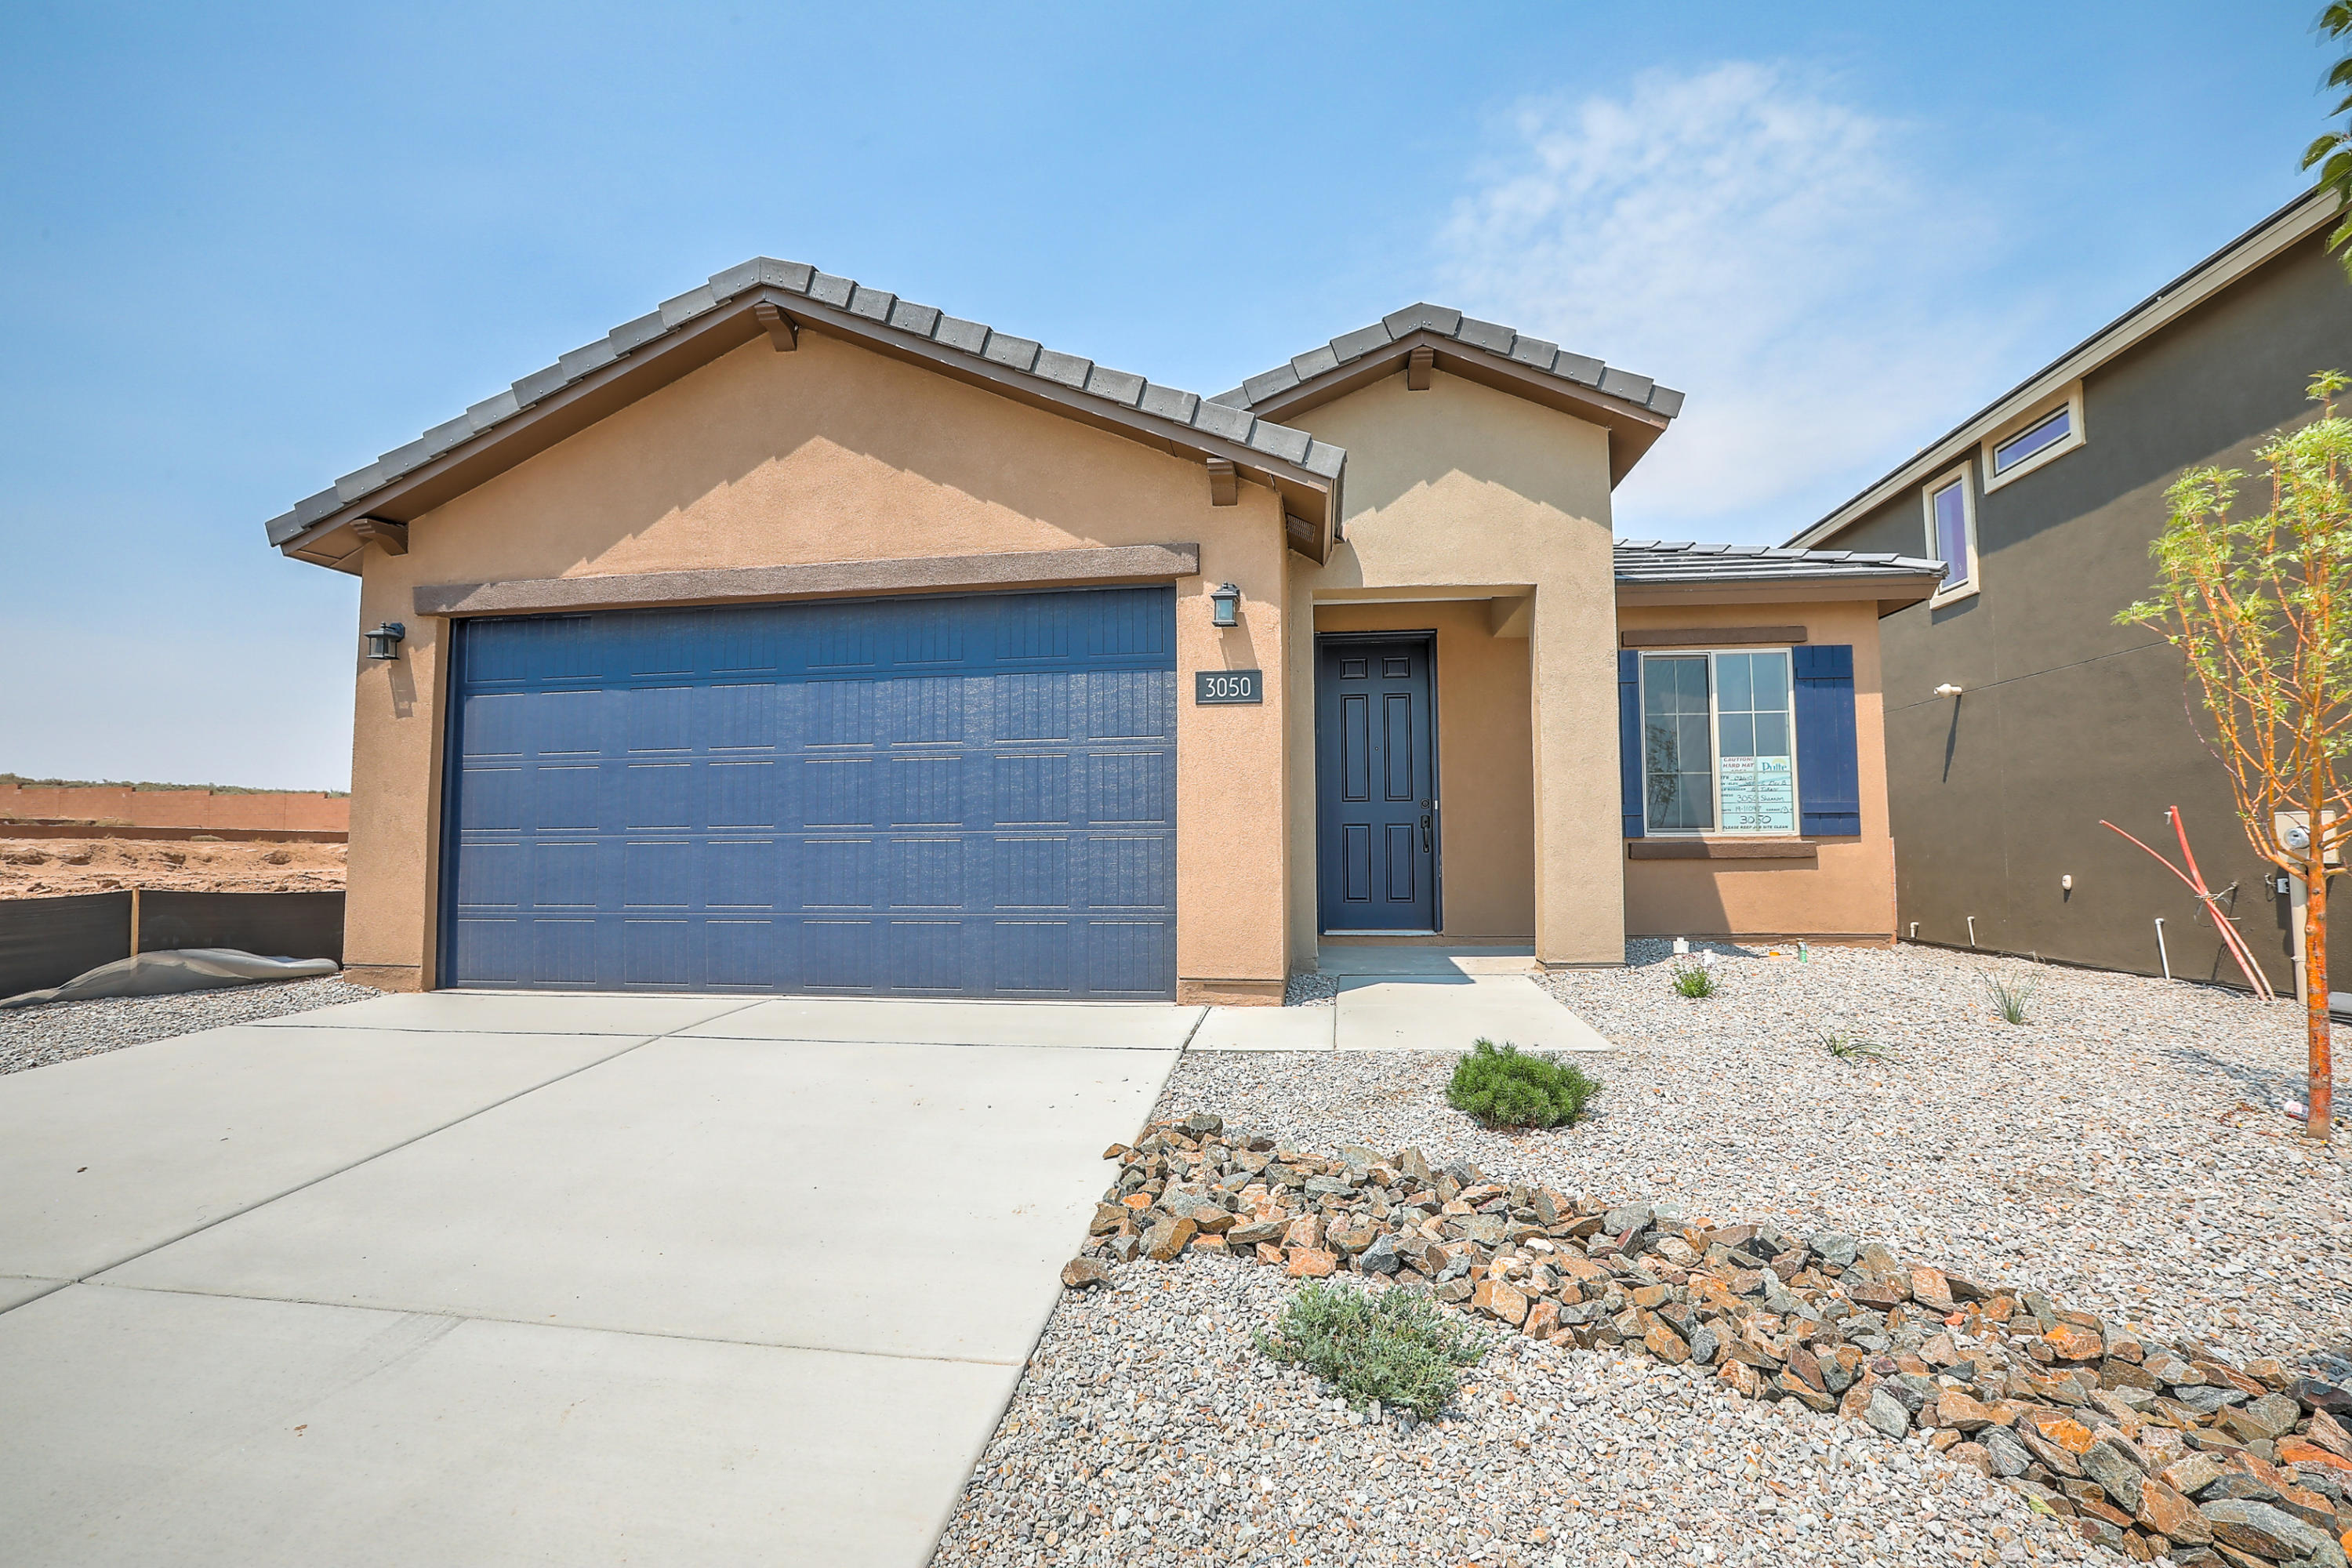 3050 Shannon Lane NE Property Photo - Rio Rancho, NM real estate listing